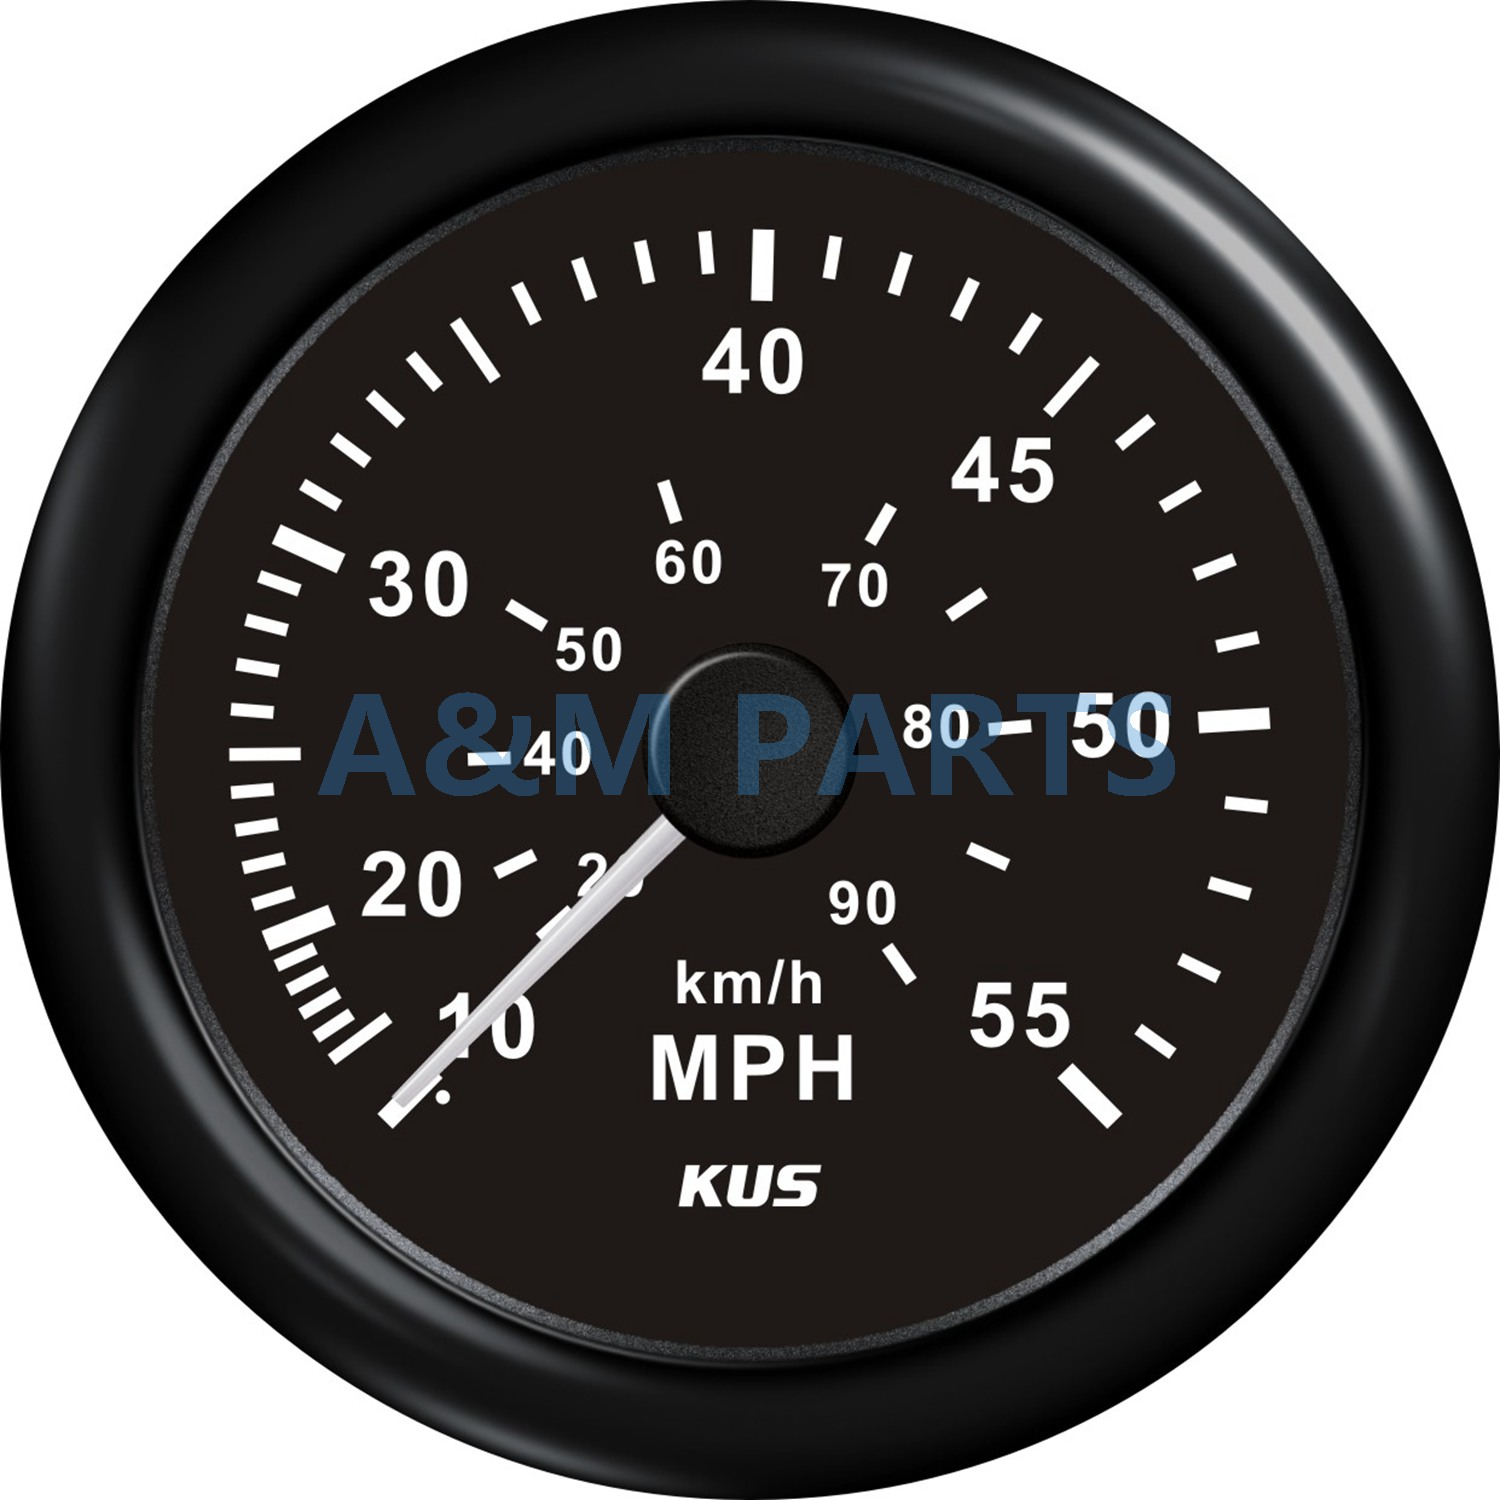 KUS Boat Speedometer Marine Offroad Waterproof Speed Meter Gauge With Red Yellow LED Back Light 0-55 MPH 90 KM/H 85mm Black Face цена и фото